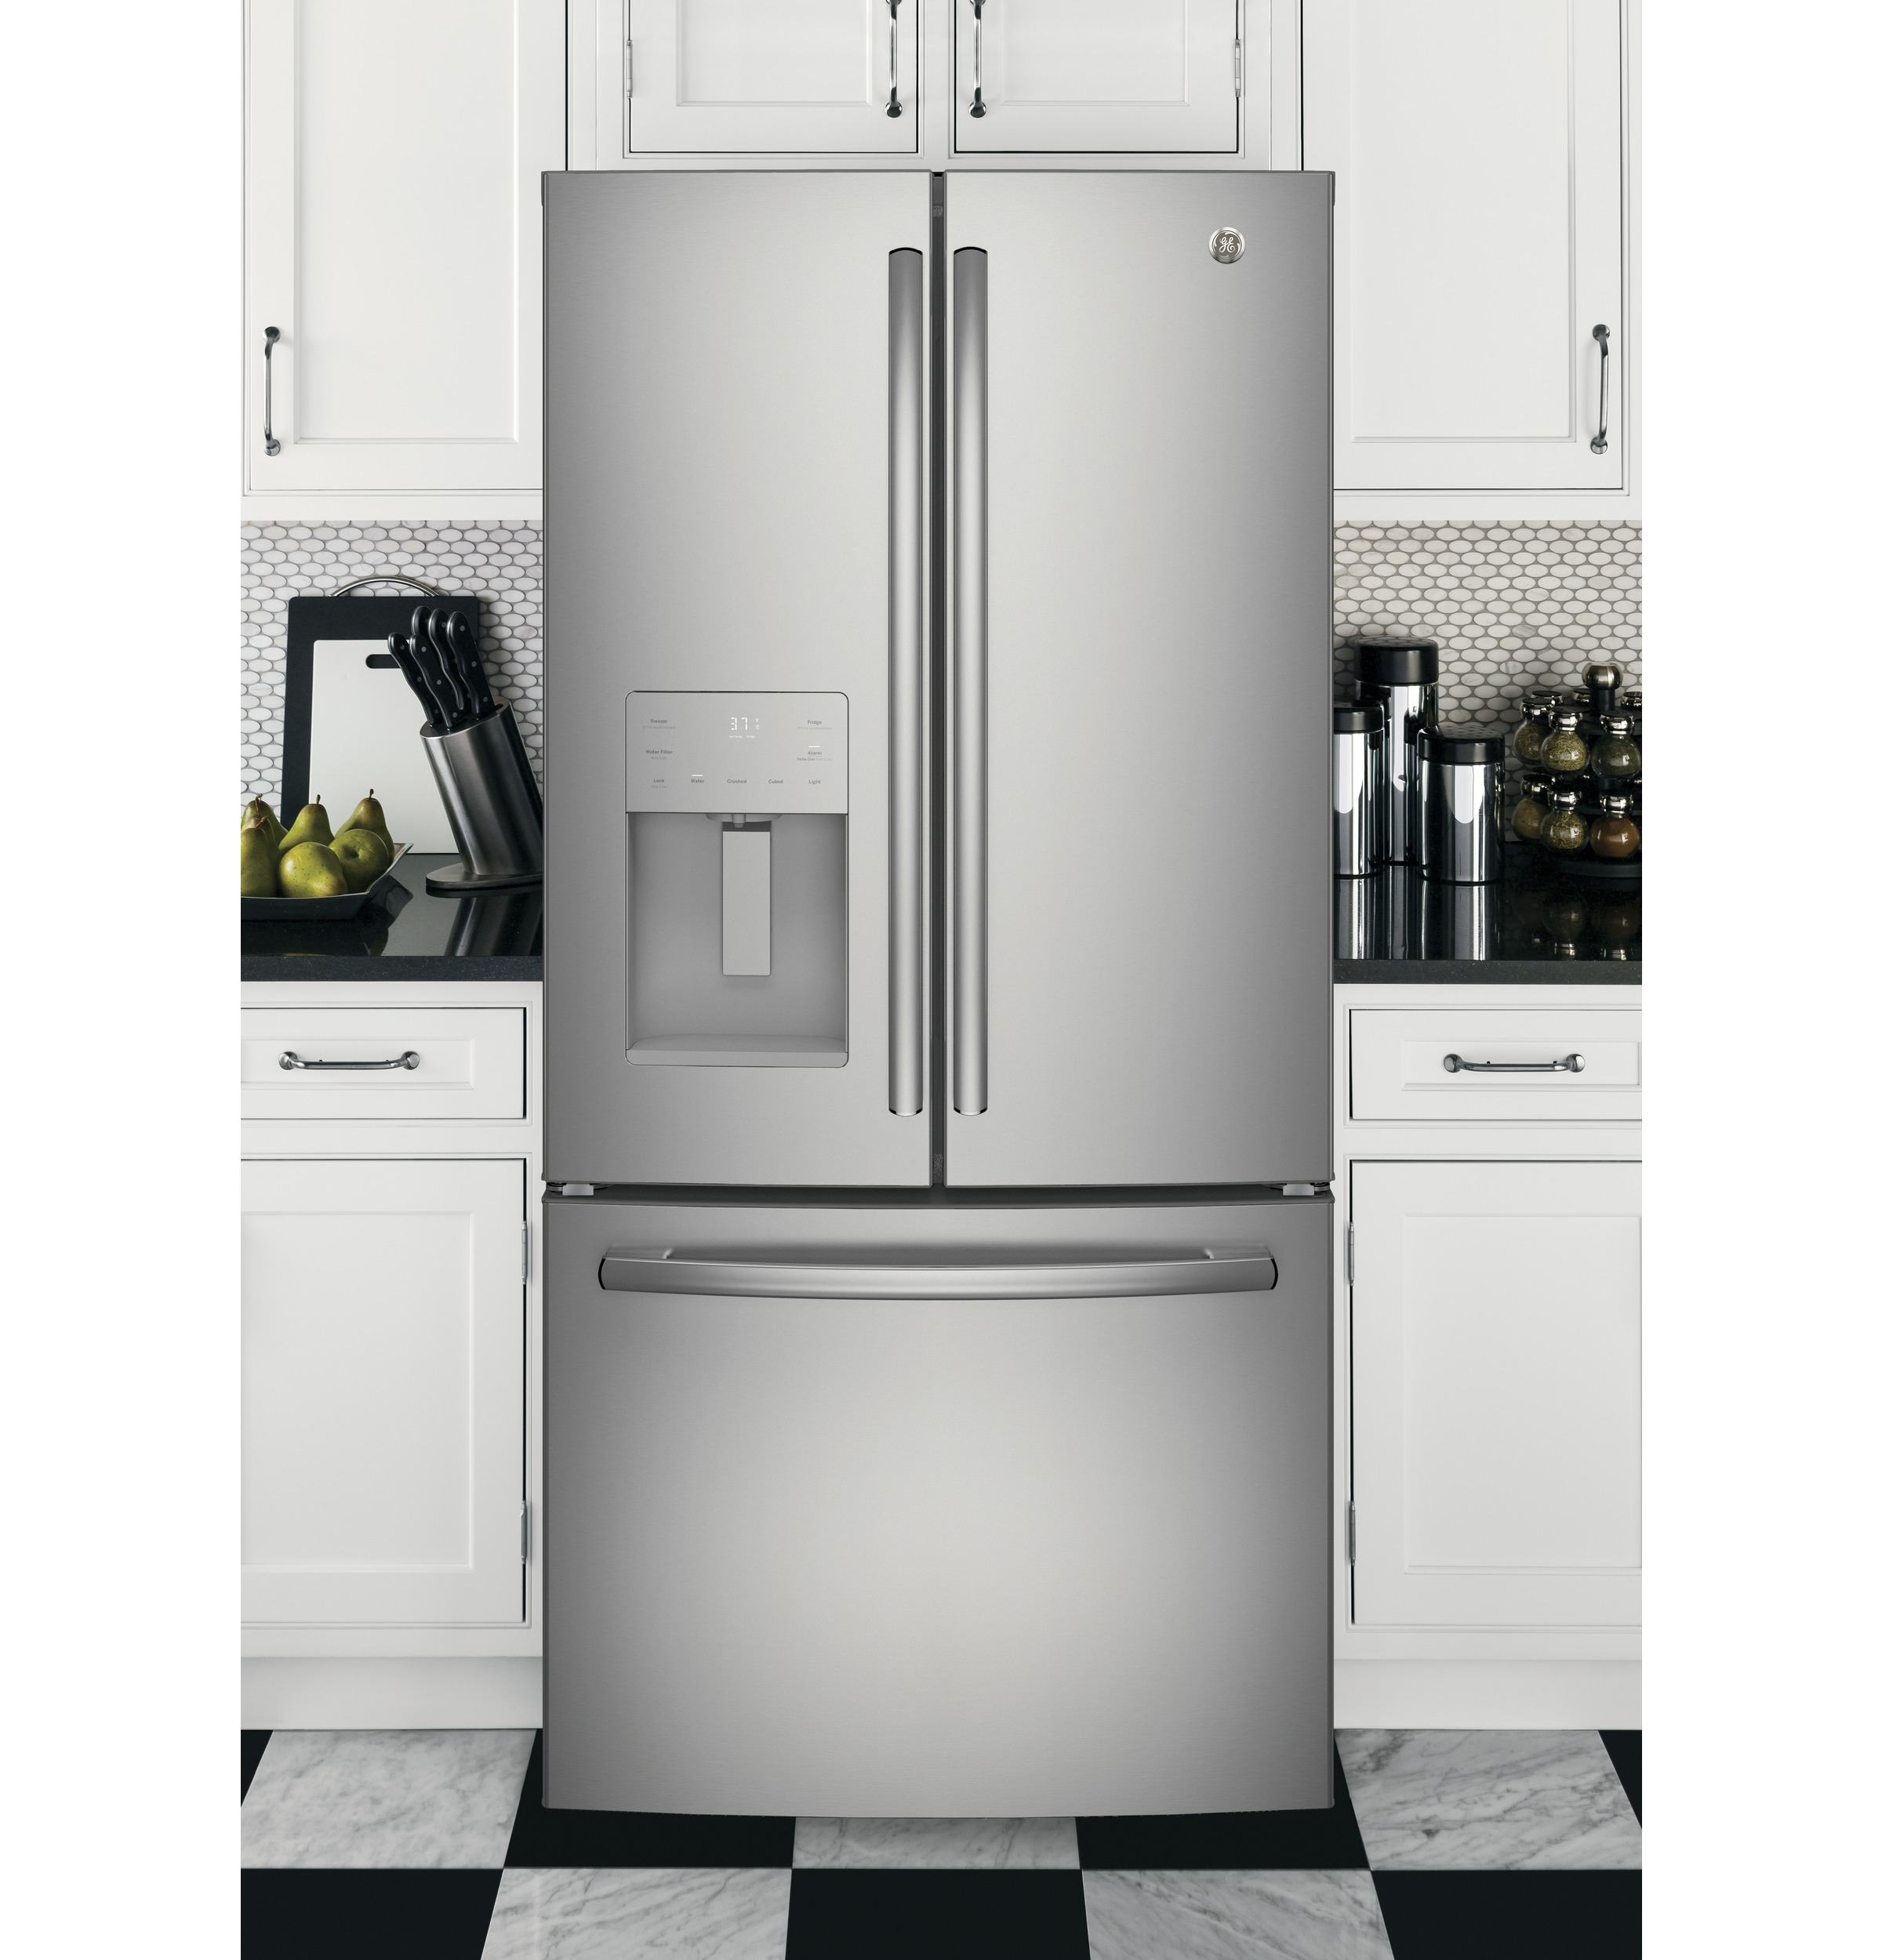 Model: GYE18JSLSS | GE® ENERGY STAR® 17.5 Cu. Ft. Counter-Depth French-Door Refrigerator